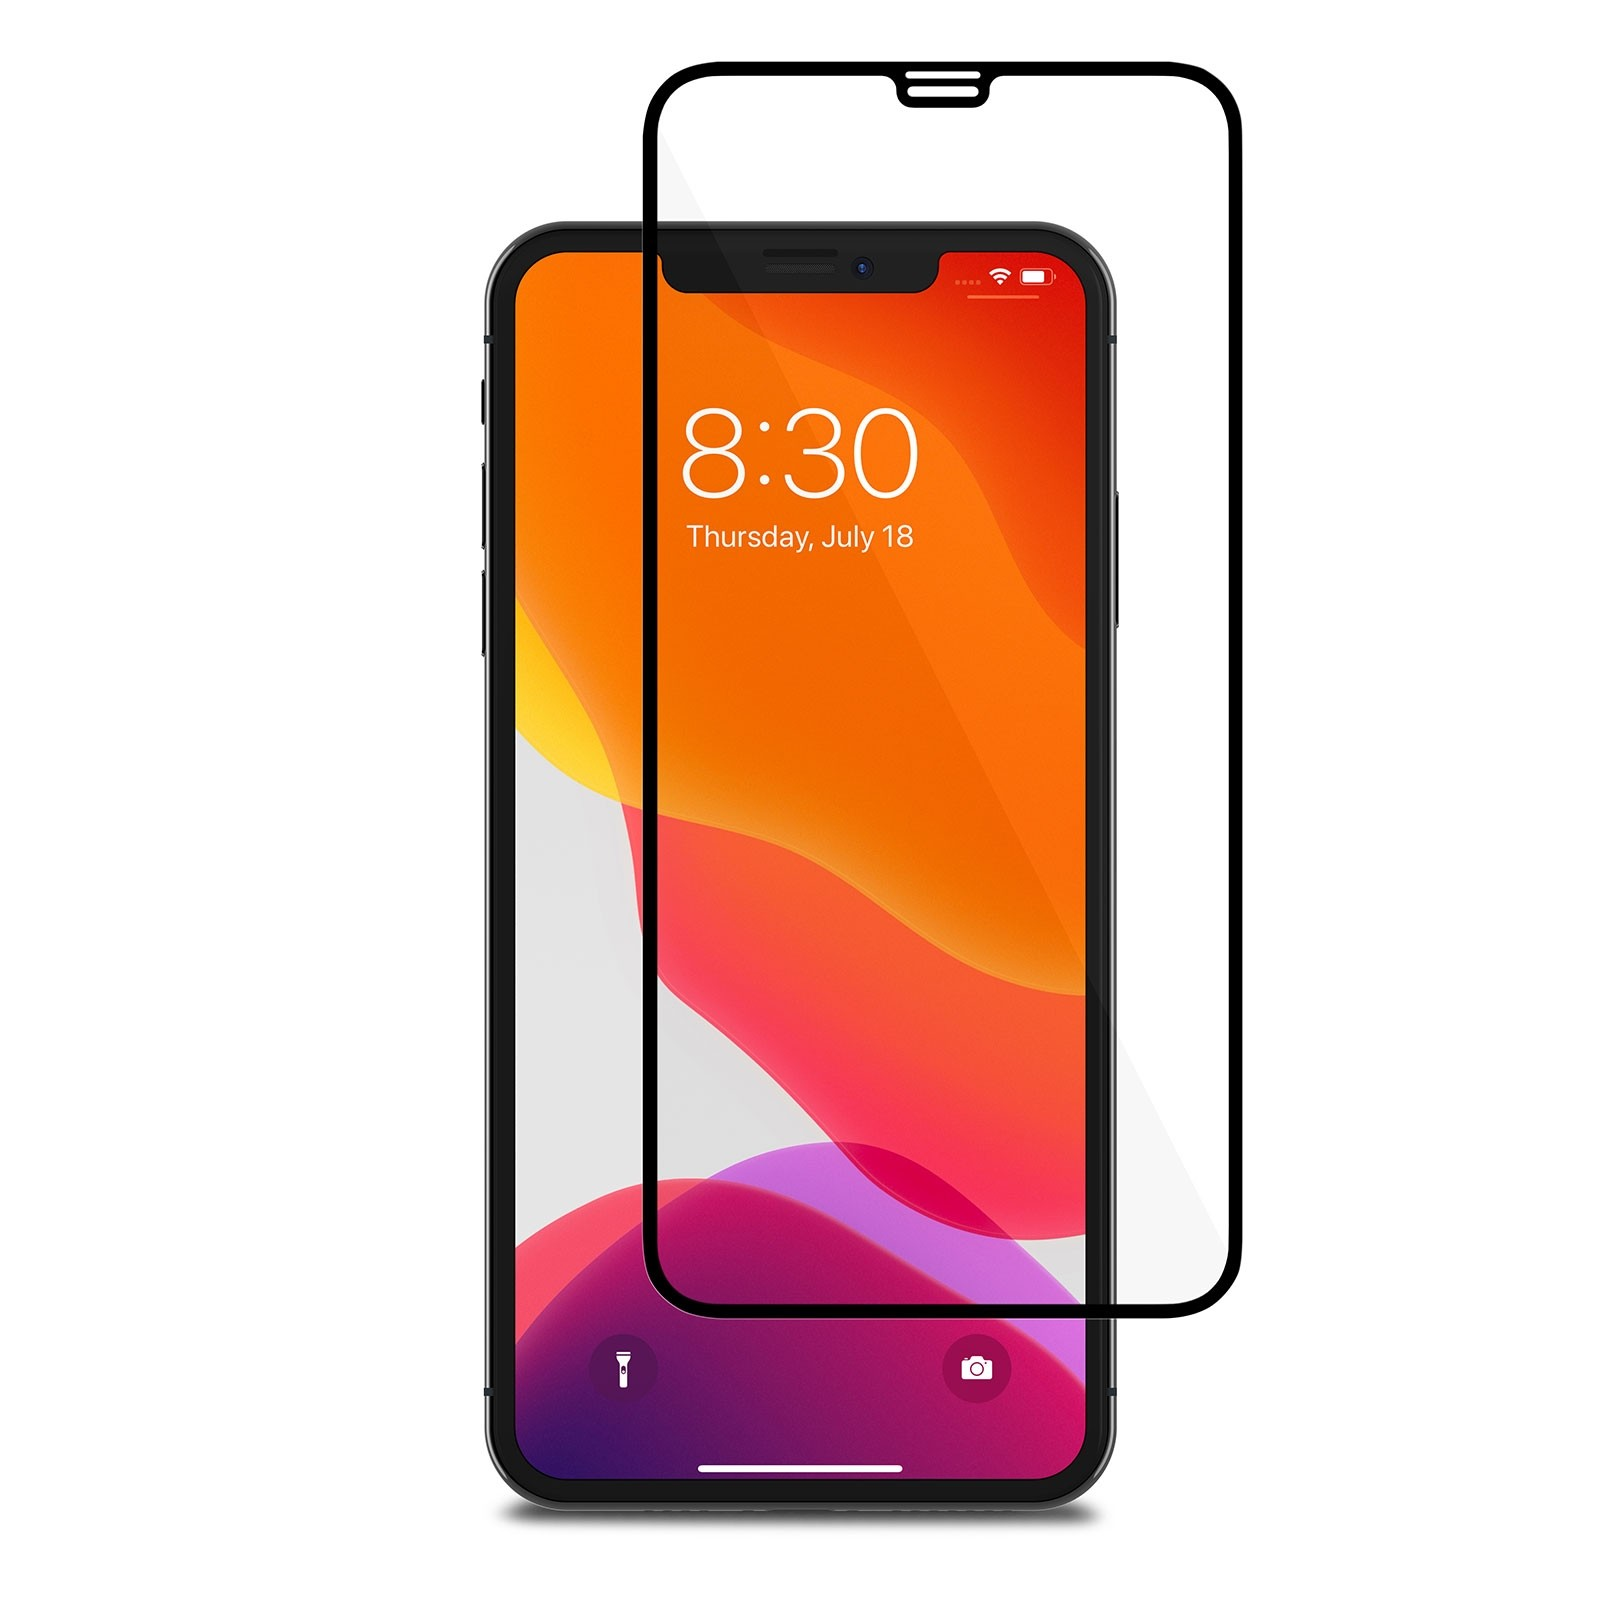 **DISCONTINUED** Moshi IonGlass for iPhone 11 Pro Max / Xs Max - Black, 99MO096022